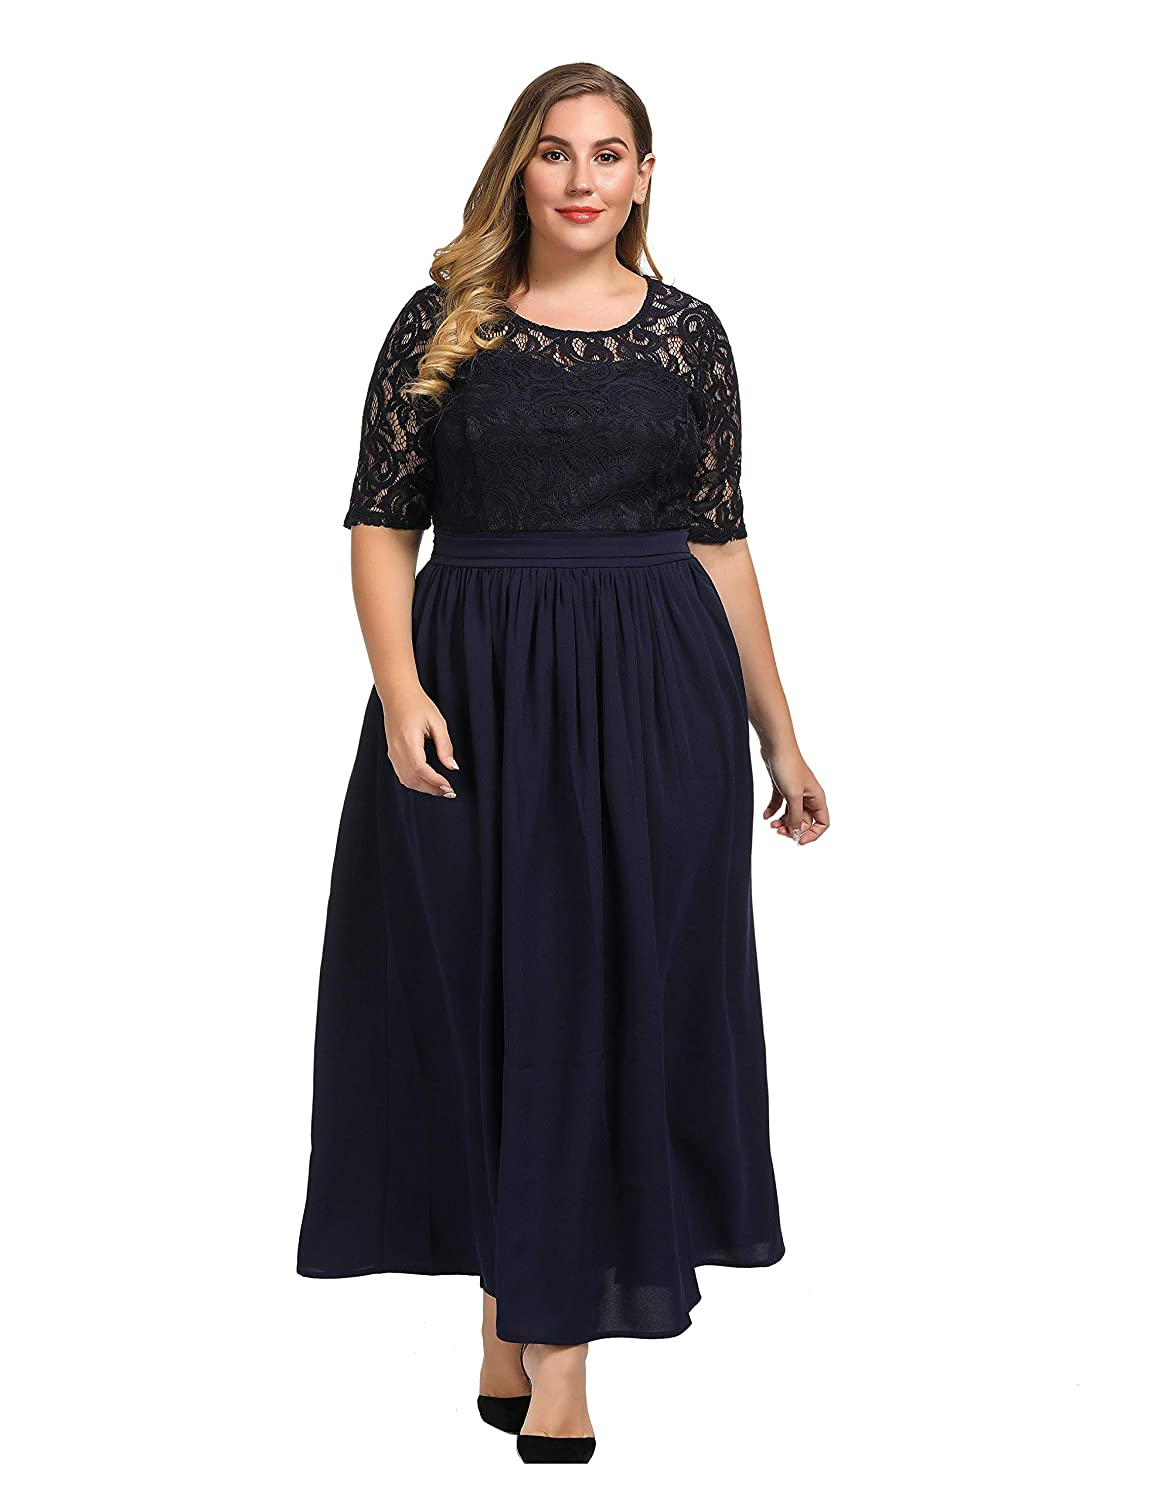 932a566ca28 Chicwe Women s Plus Size Guipure Lace Maxi Dress - Wedding Party Cocktail  Dress with Flared Skirt Floor Length at Amazon Women s Clothing store